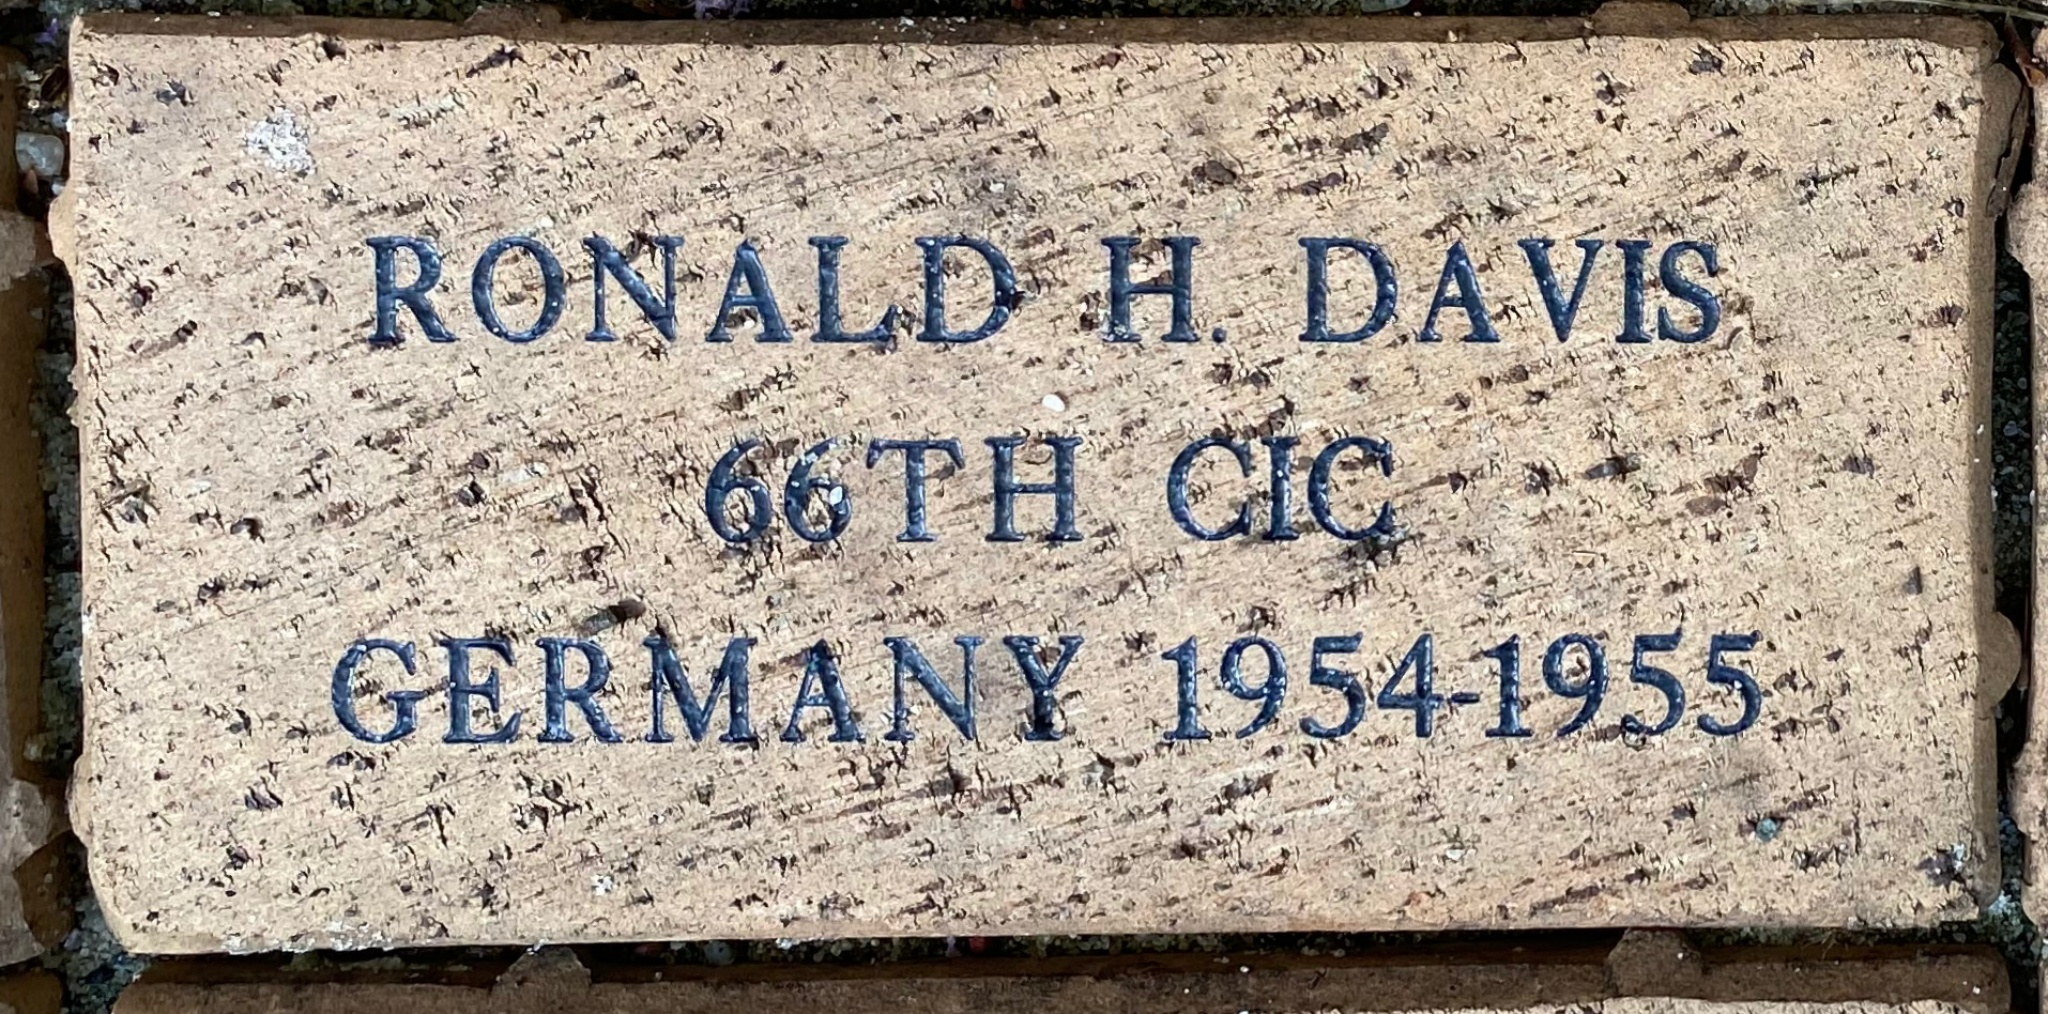 RONALD H. DAVIS 66TH CIC GERMANY 1954-1955